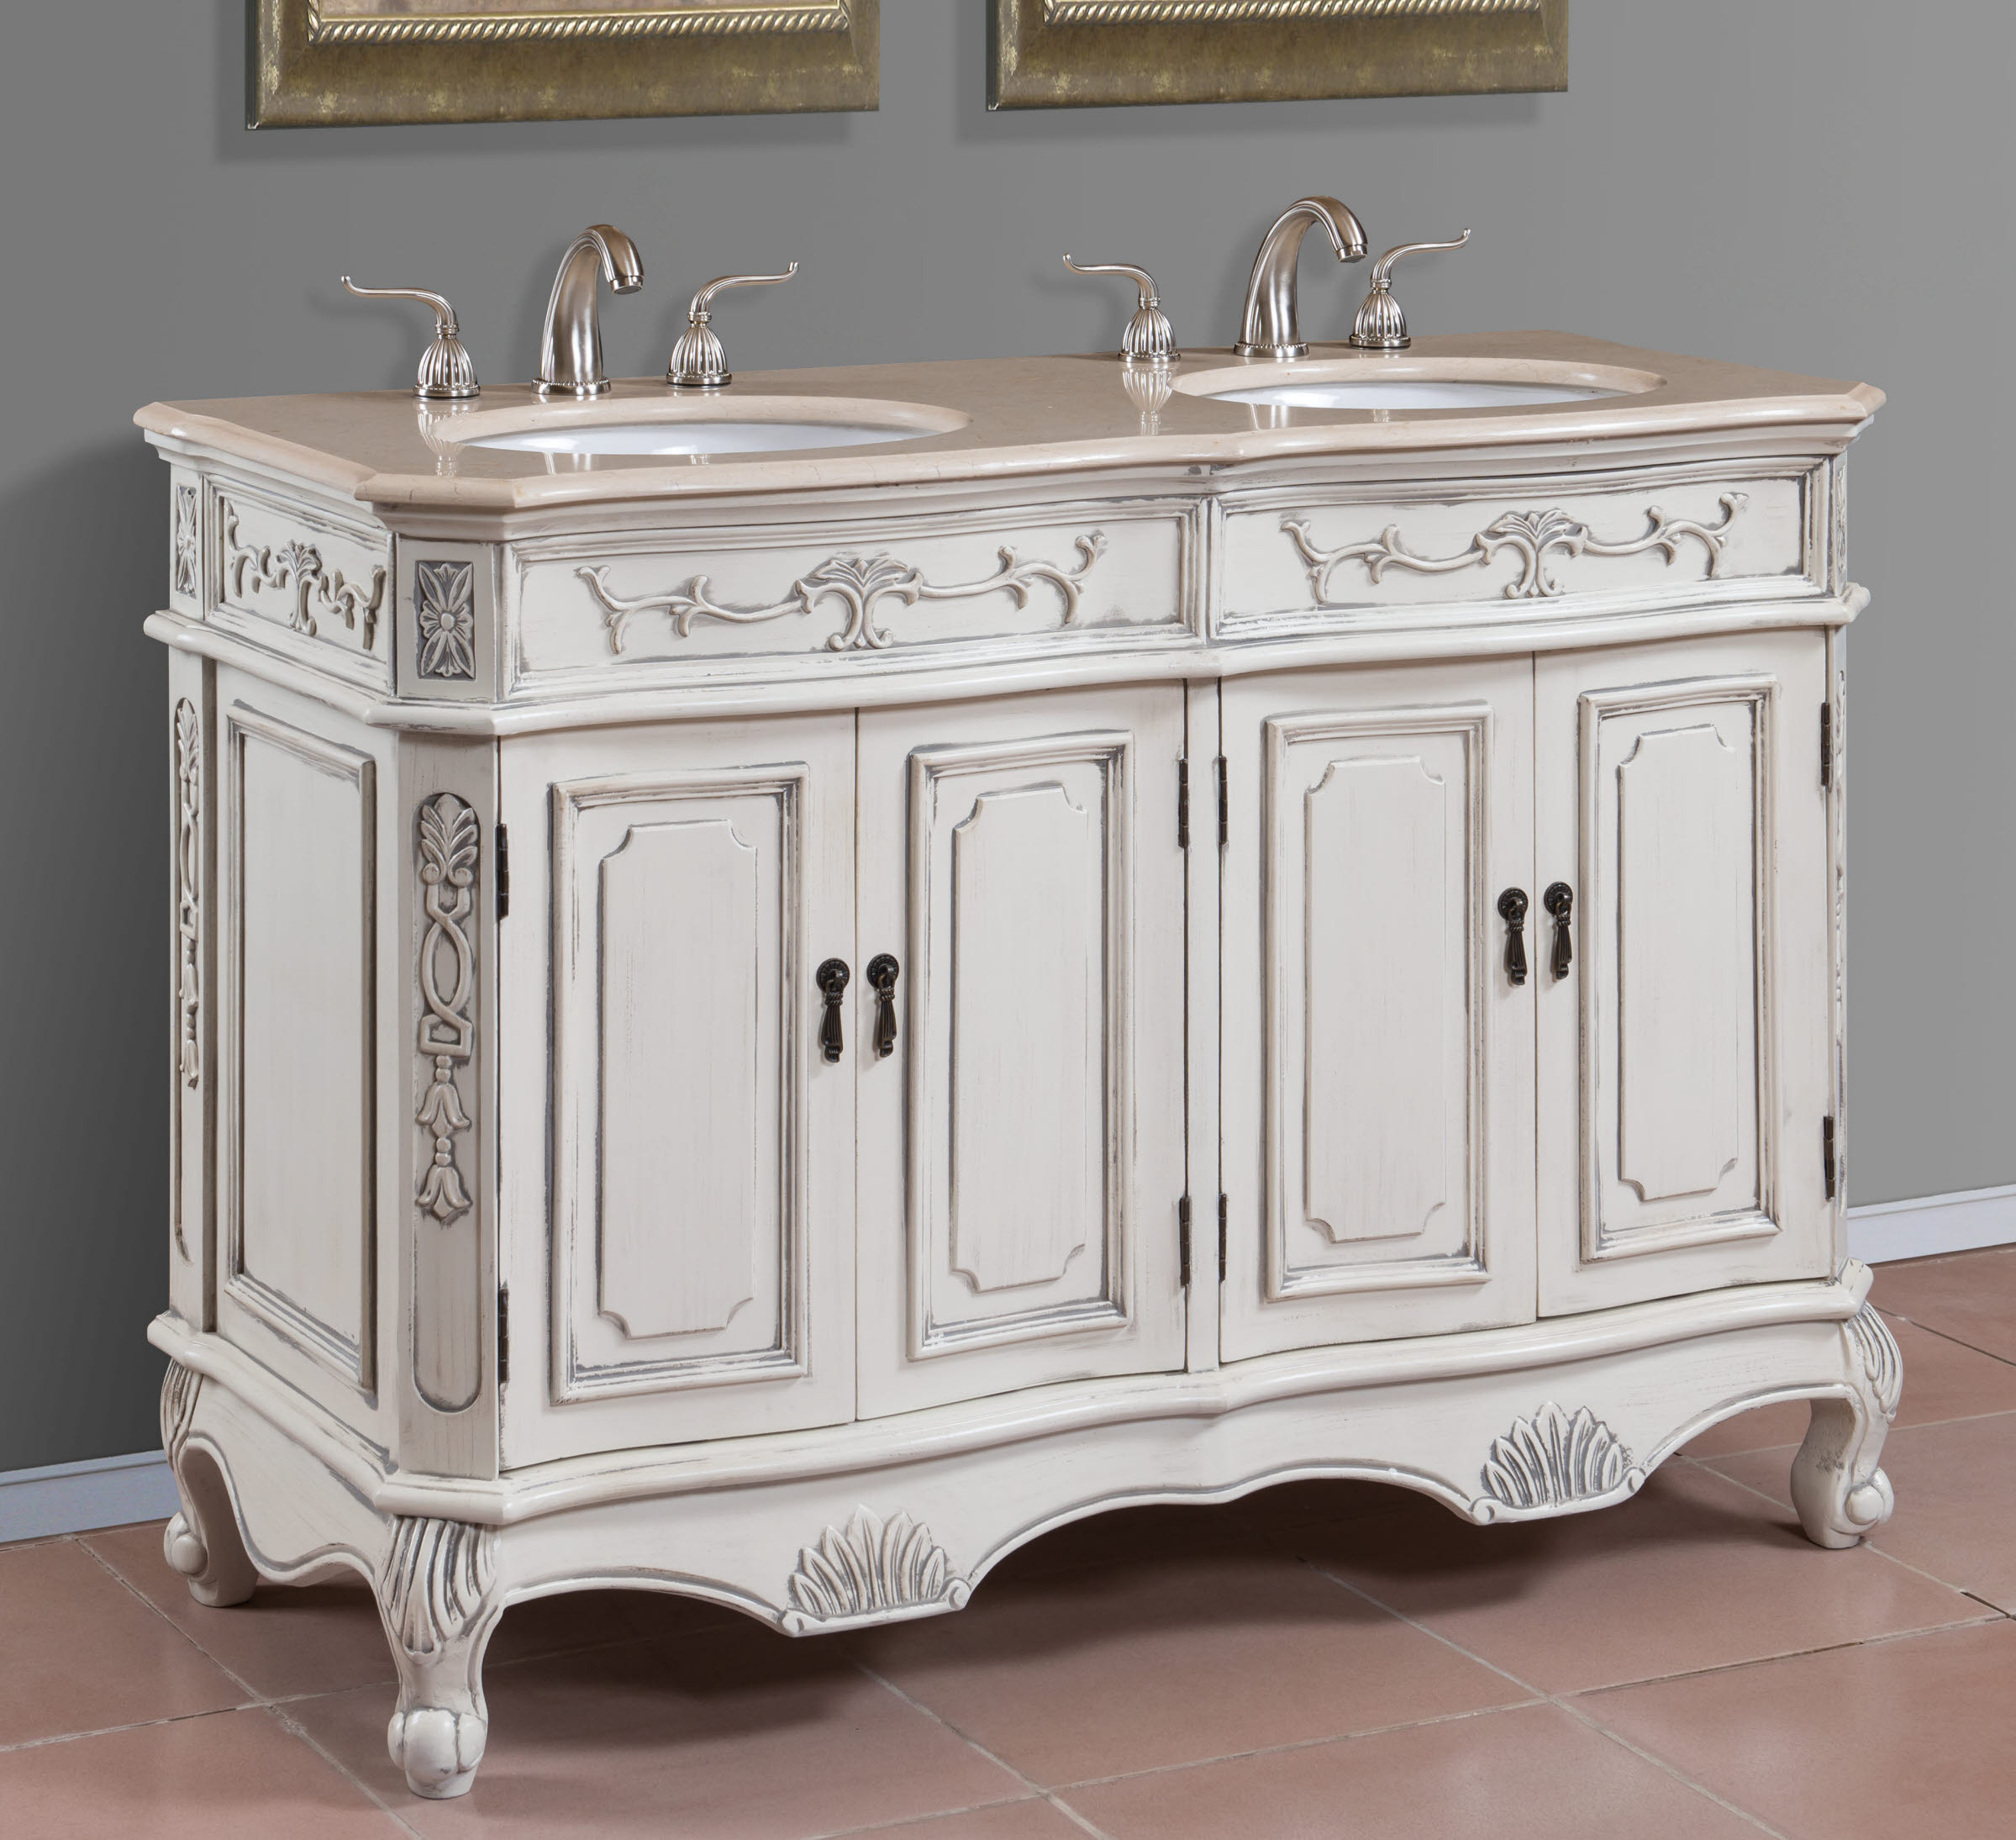 Two Sink Vanities 48 Inch Double Sink Bathroom Vanity Homesfeed